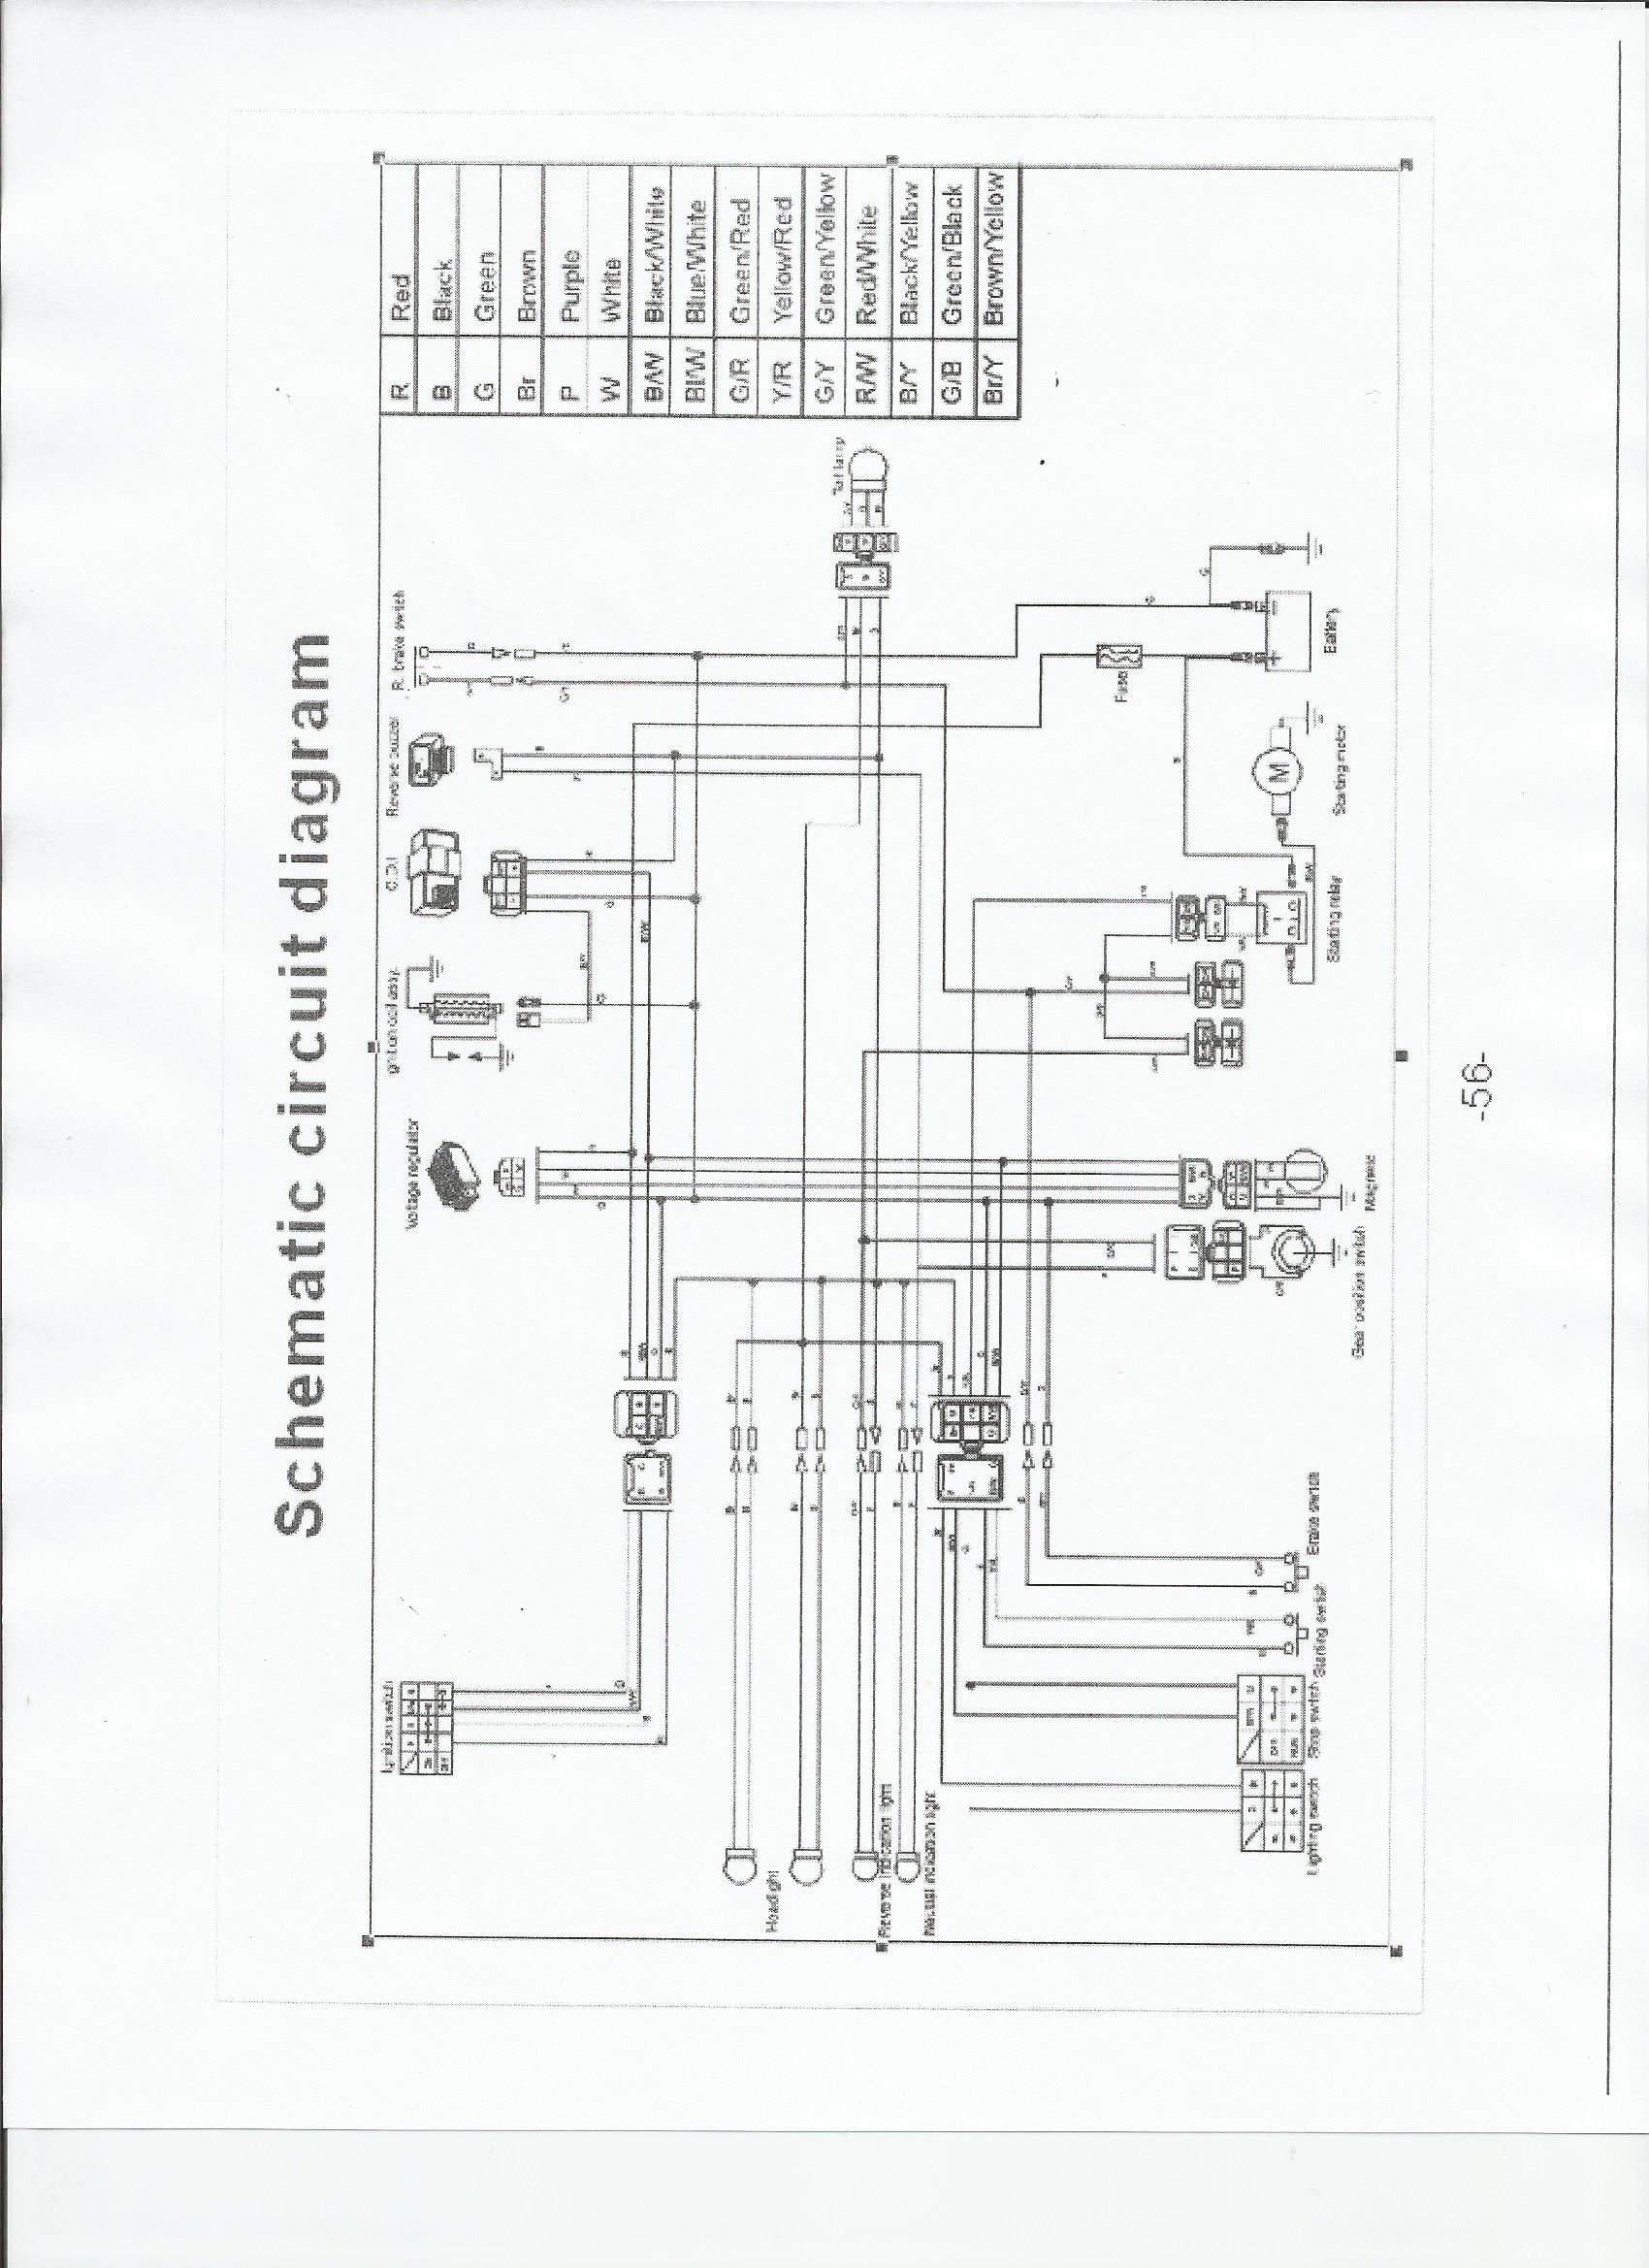 taotao mini and youth atv wiring schematic familygokarts support rh support familygokarts com tao tao wiring diagram ate-501 taotao 110 wiring diagram